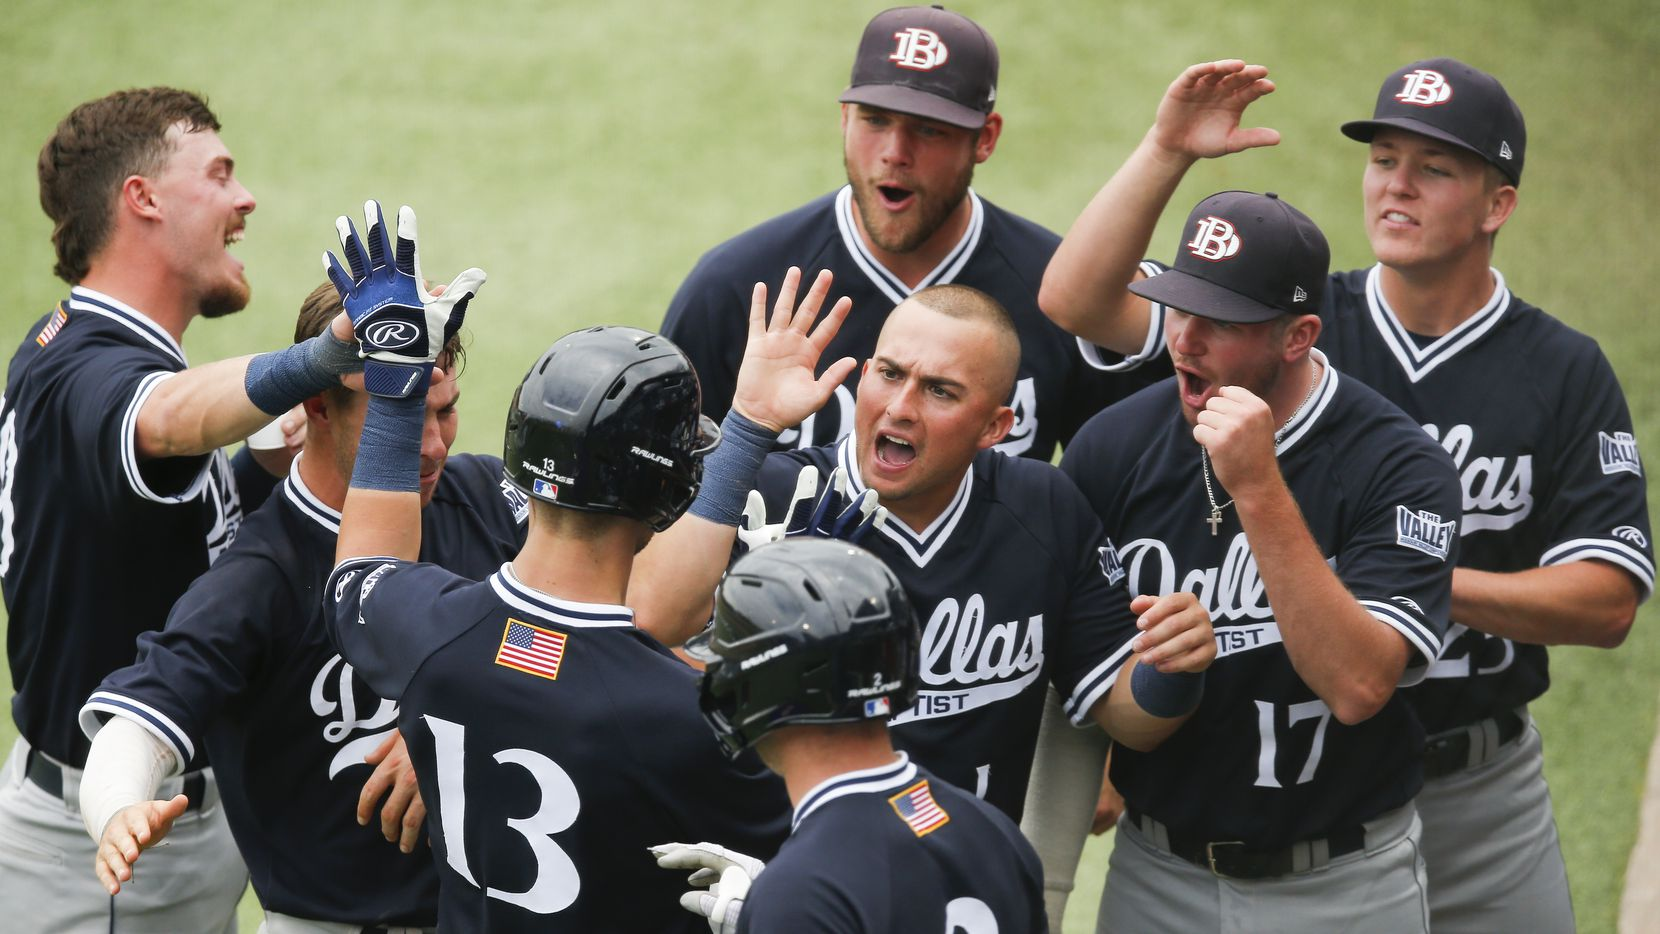 DBU's Andrew Benefield (13) is congratulated by teammates after hitting a solo home run in the fifth inning during the NCAA Fort Worth Regional baseball tournament against Oregon St. at TCU's Lupton Stadium in Fort Worth, Friday, June 4, 2021. Dallas Baptist won 6-5. (Brandon Wade/Special Contributor)